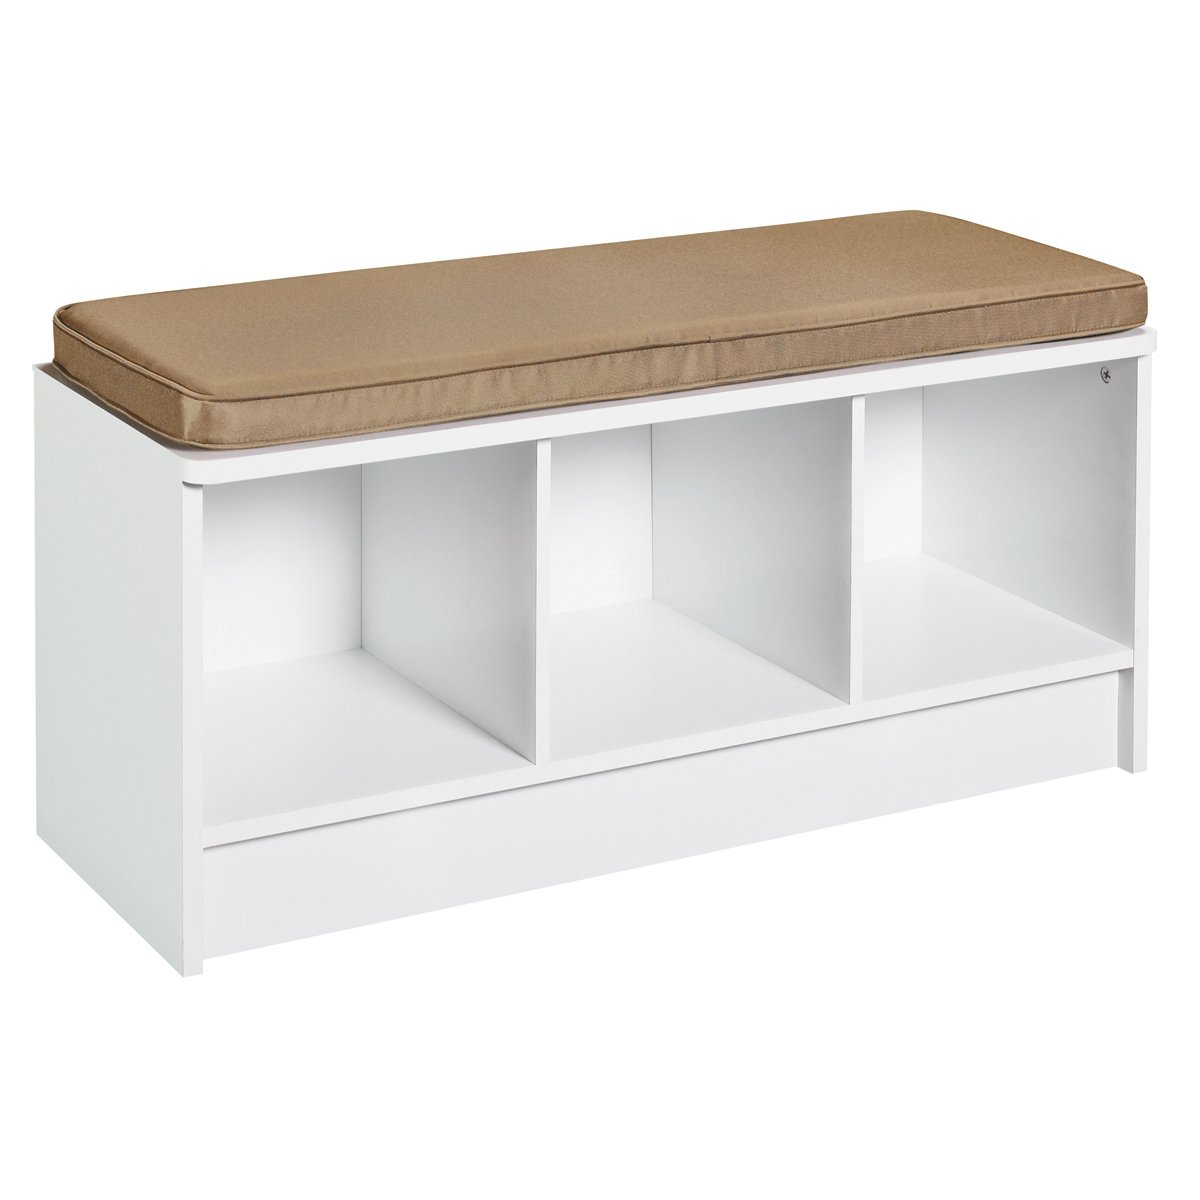 Entryway 3 cube storage bench white organization furniture hallway window seat ebay Bench with shelf